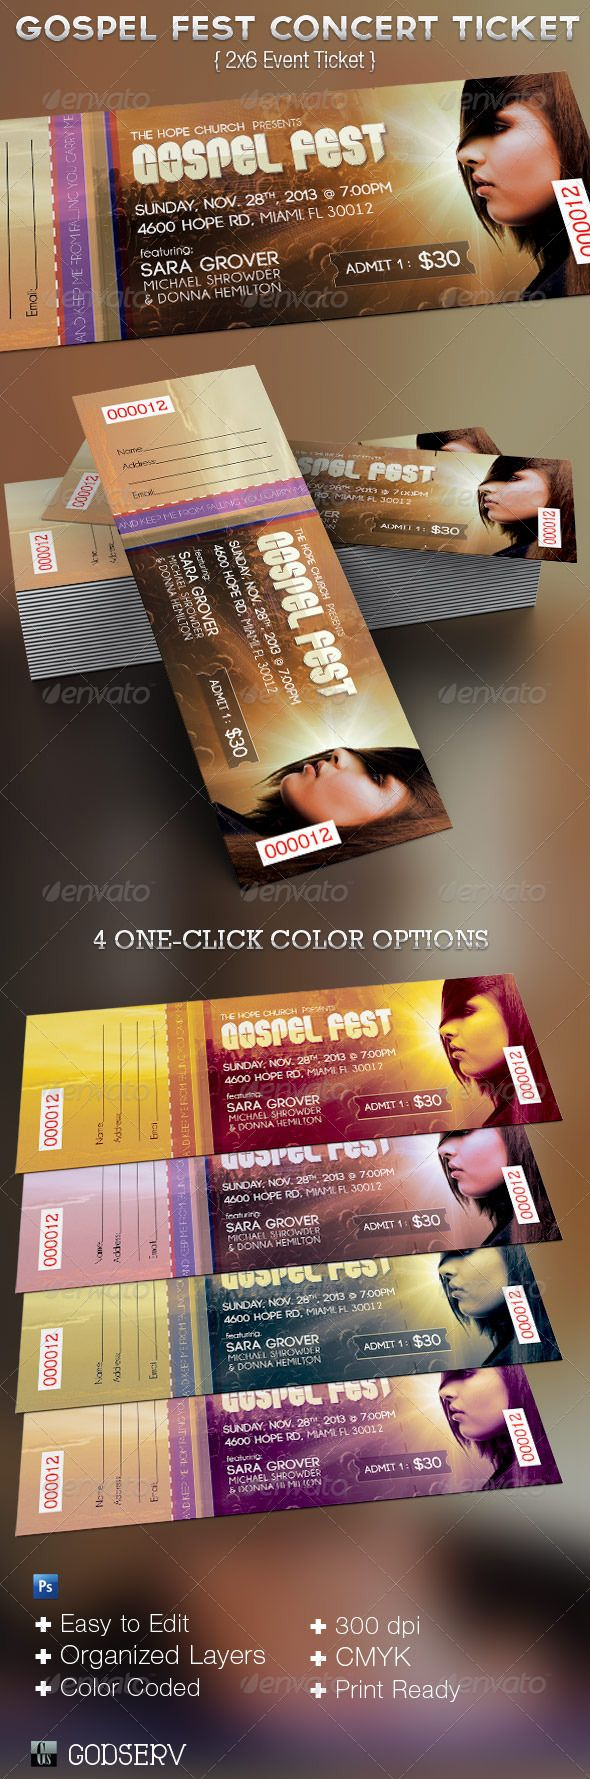 Concert Ticket Template Free Download New 14 Best Layoutstext And Images Images On Pinterest  Brochures .